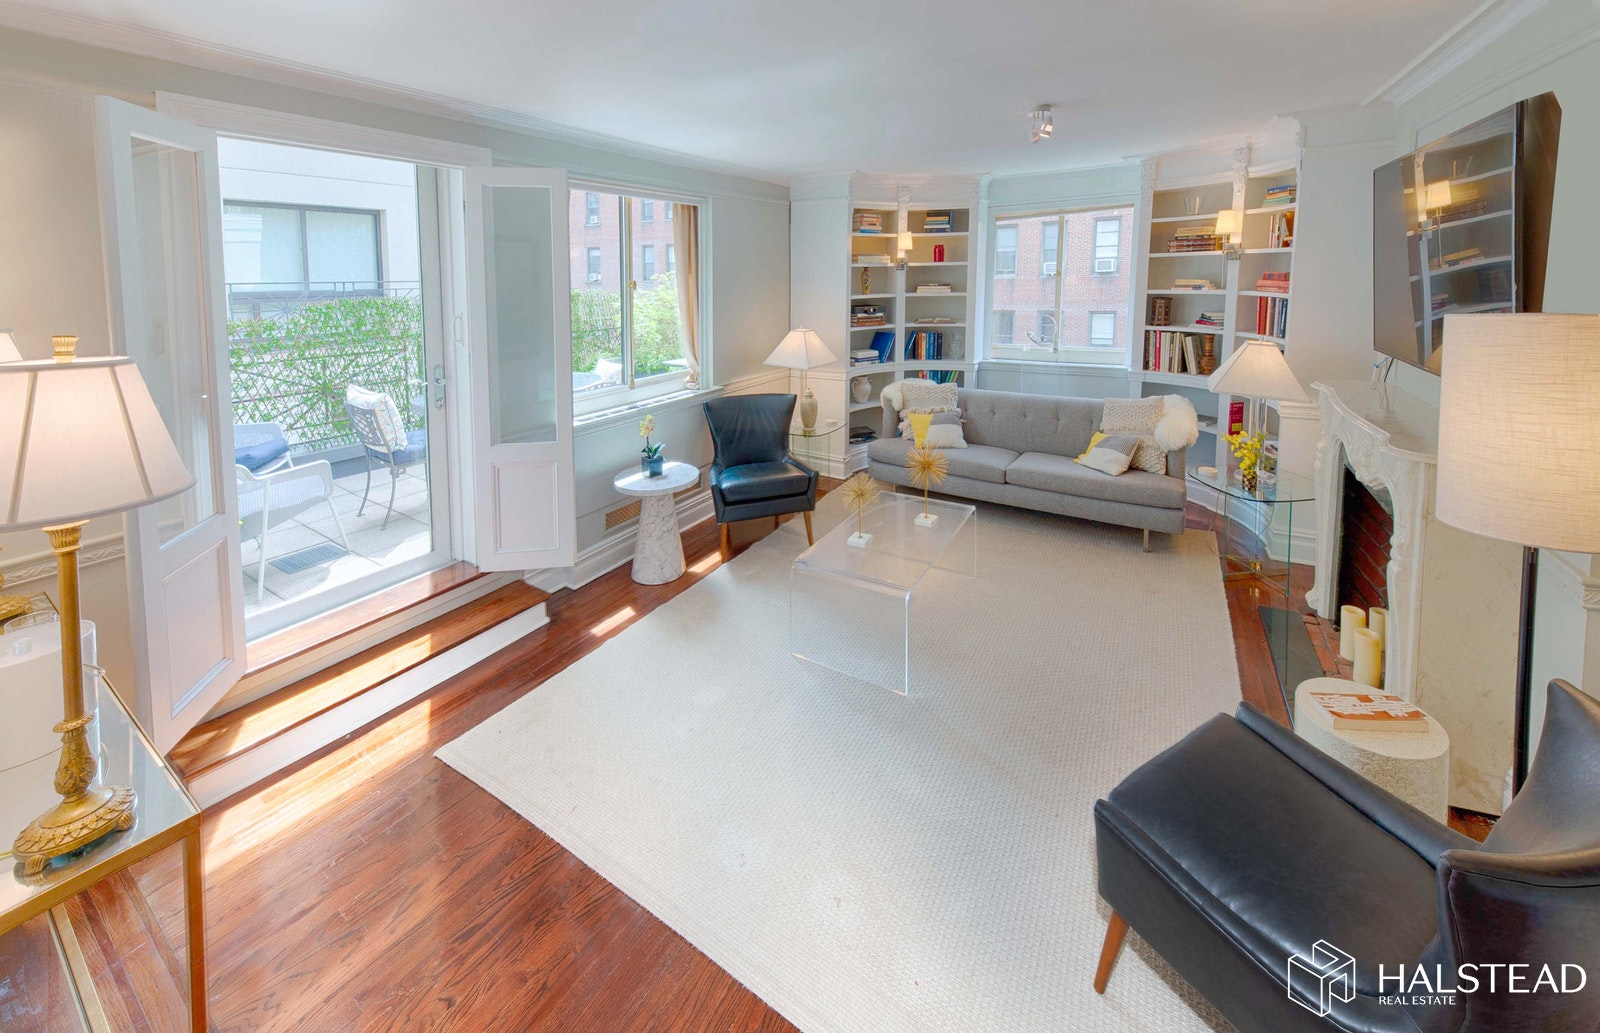 203 West 90th Street 7b, Upper West Side, NYC, 10024, $2,750,000, Property For Sale, Halstead Real Estate, Photo 1